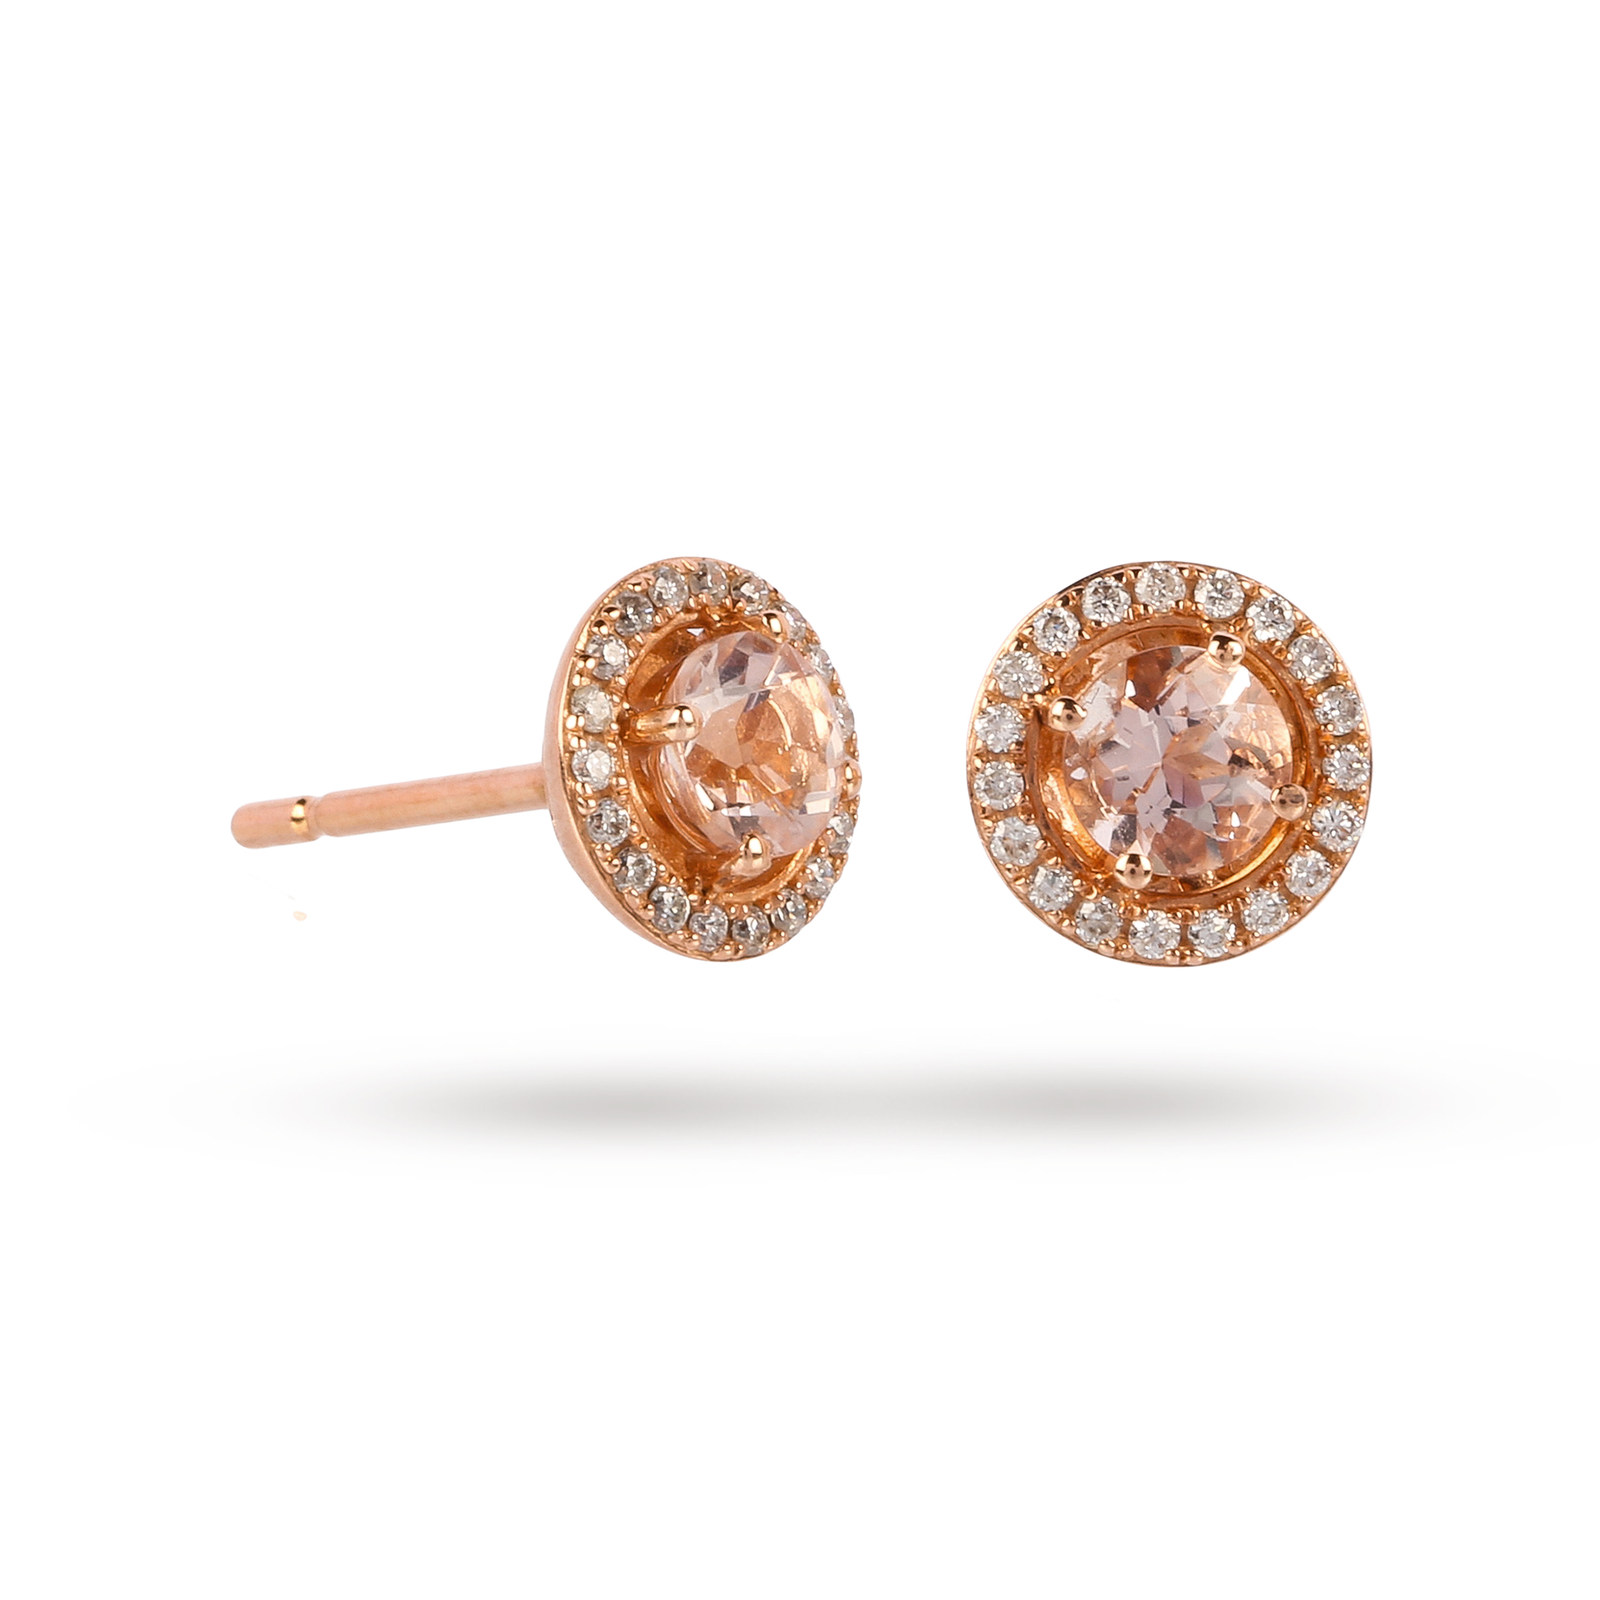 l earrings brown tiny stud cz diamond cartilage